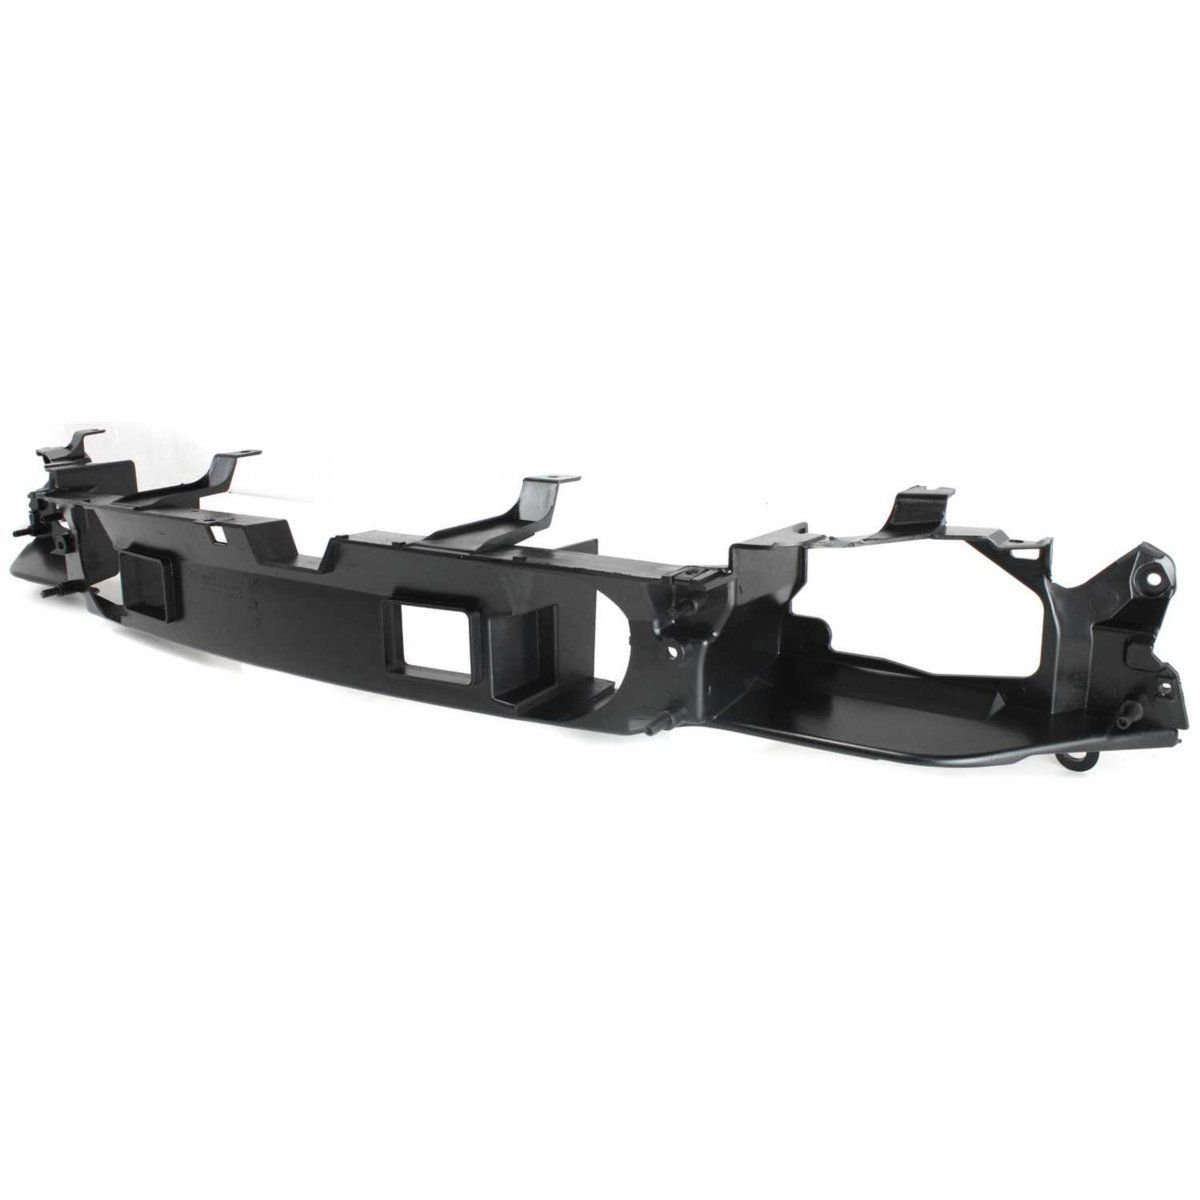 Header Panel For 98-03 Ford Escort Coupe Headlamp Mount ABS Plastic